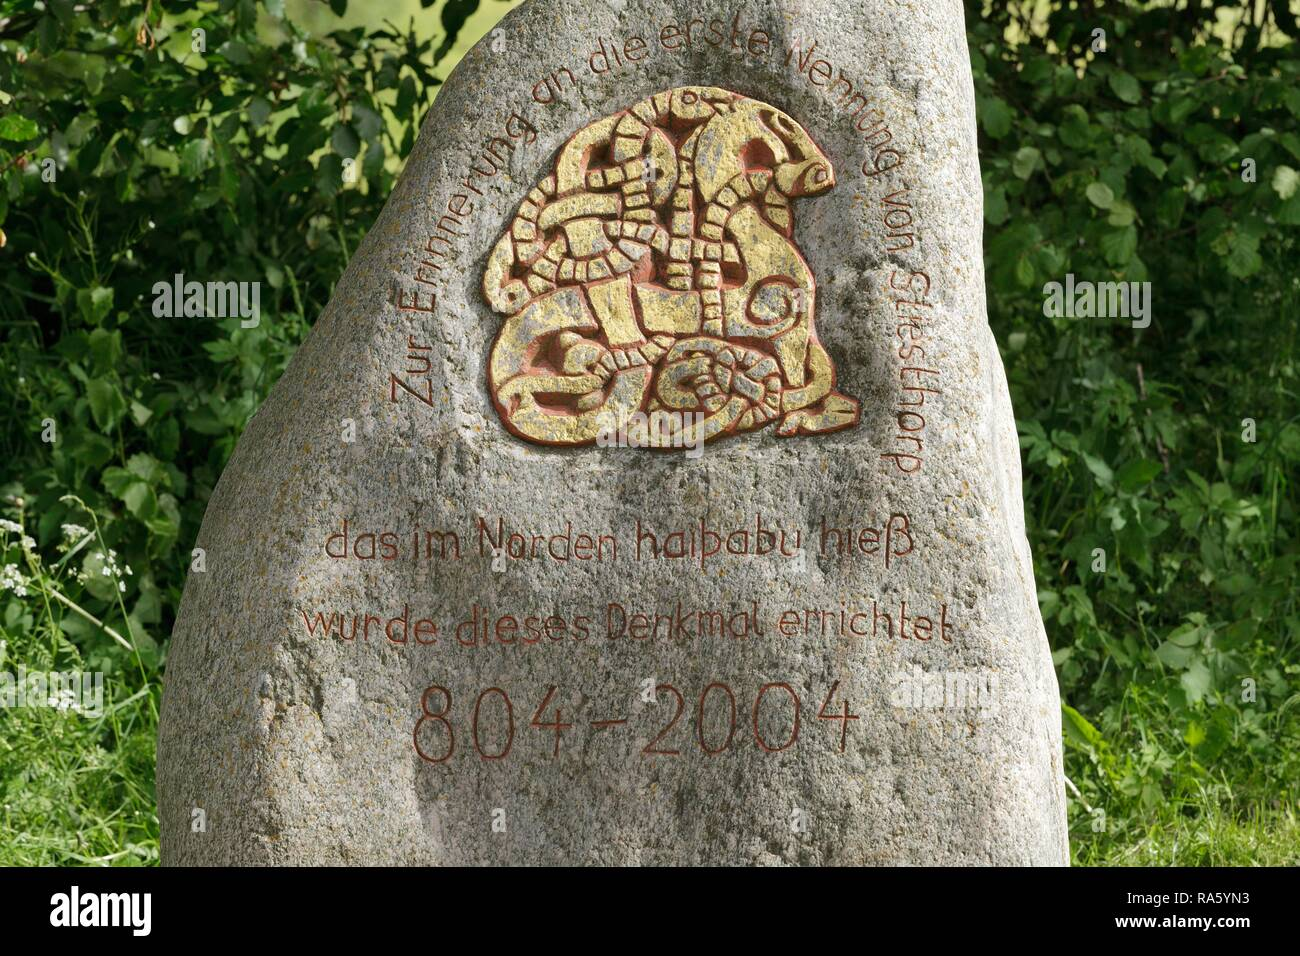 Memorial stone at the roadside between the Vikings Museum and the Viking houses at Hedeby, Haithabu, Schleswig-Holstein, Germany - Stock Image